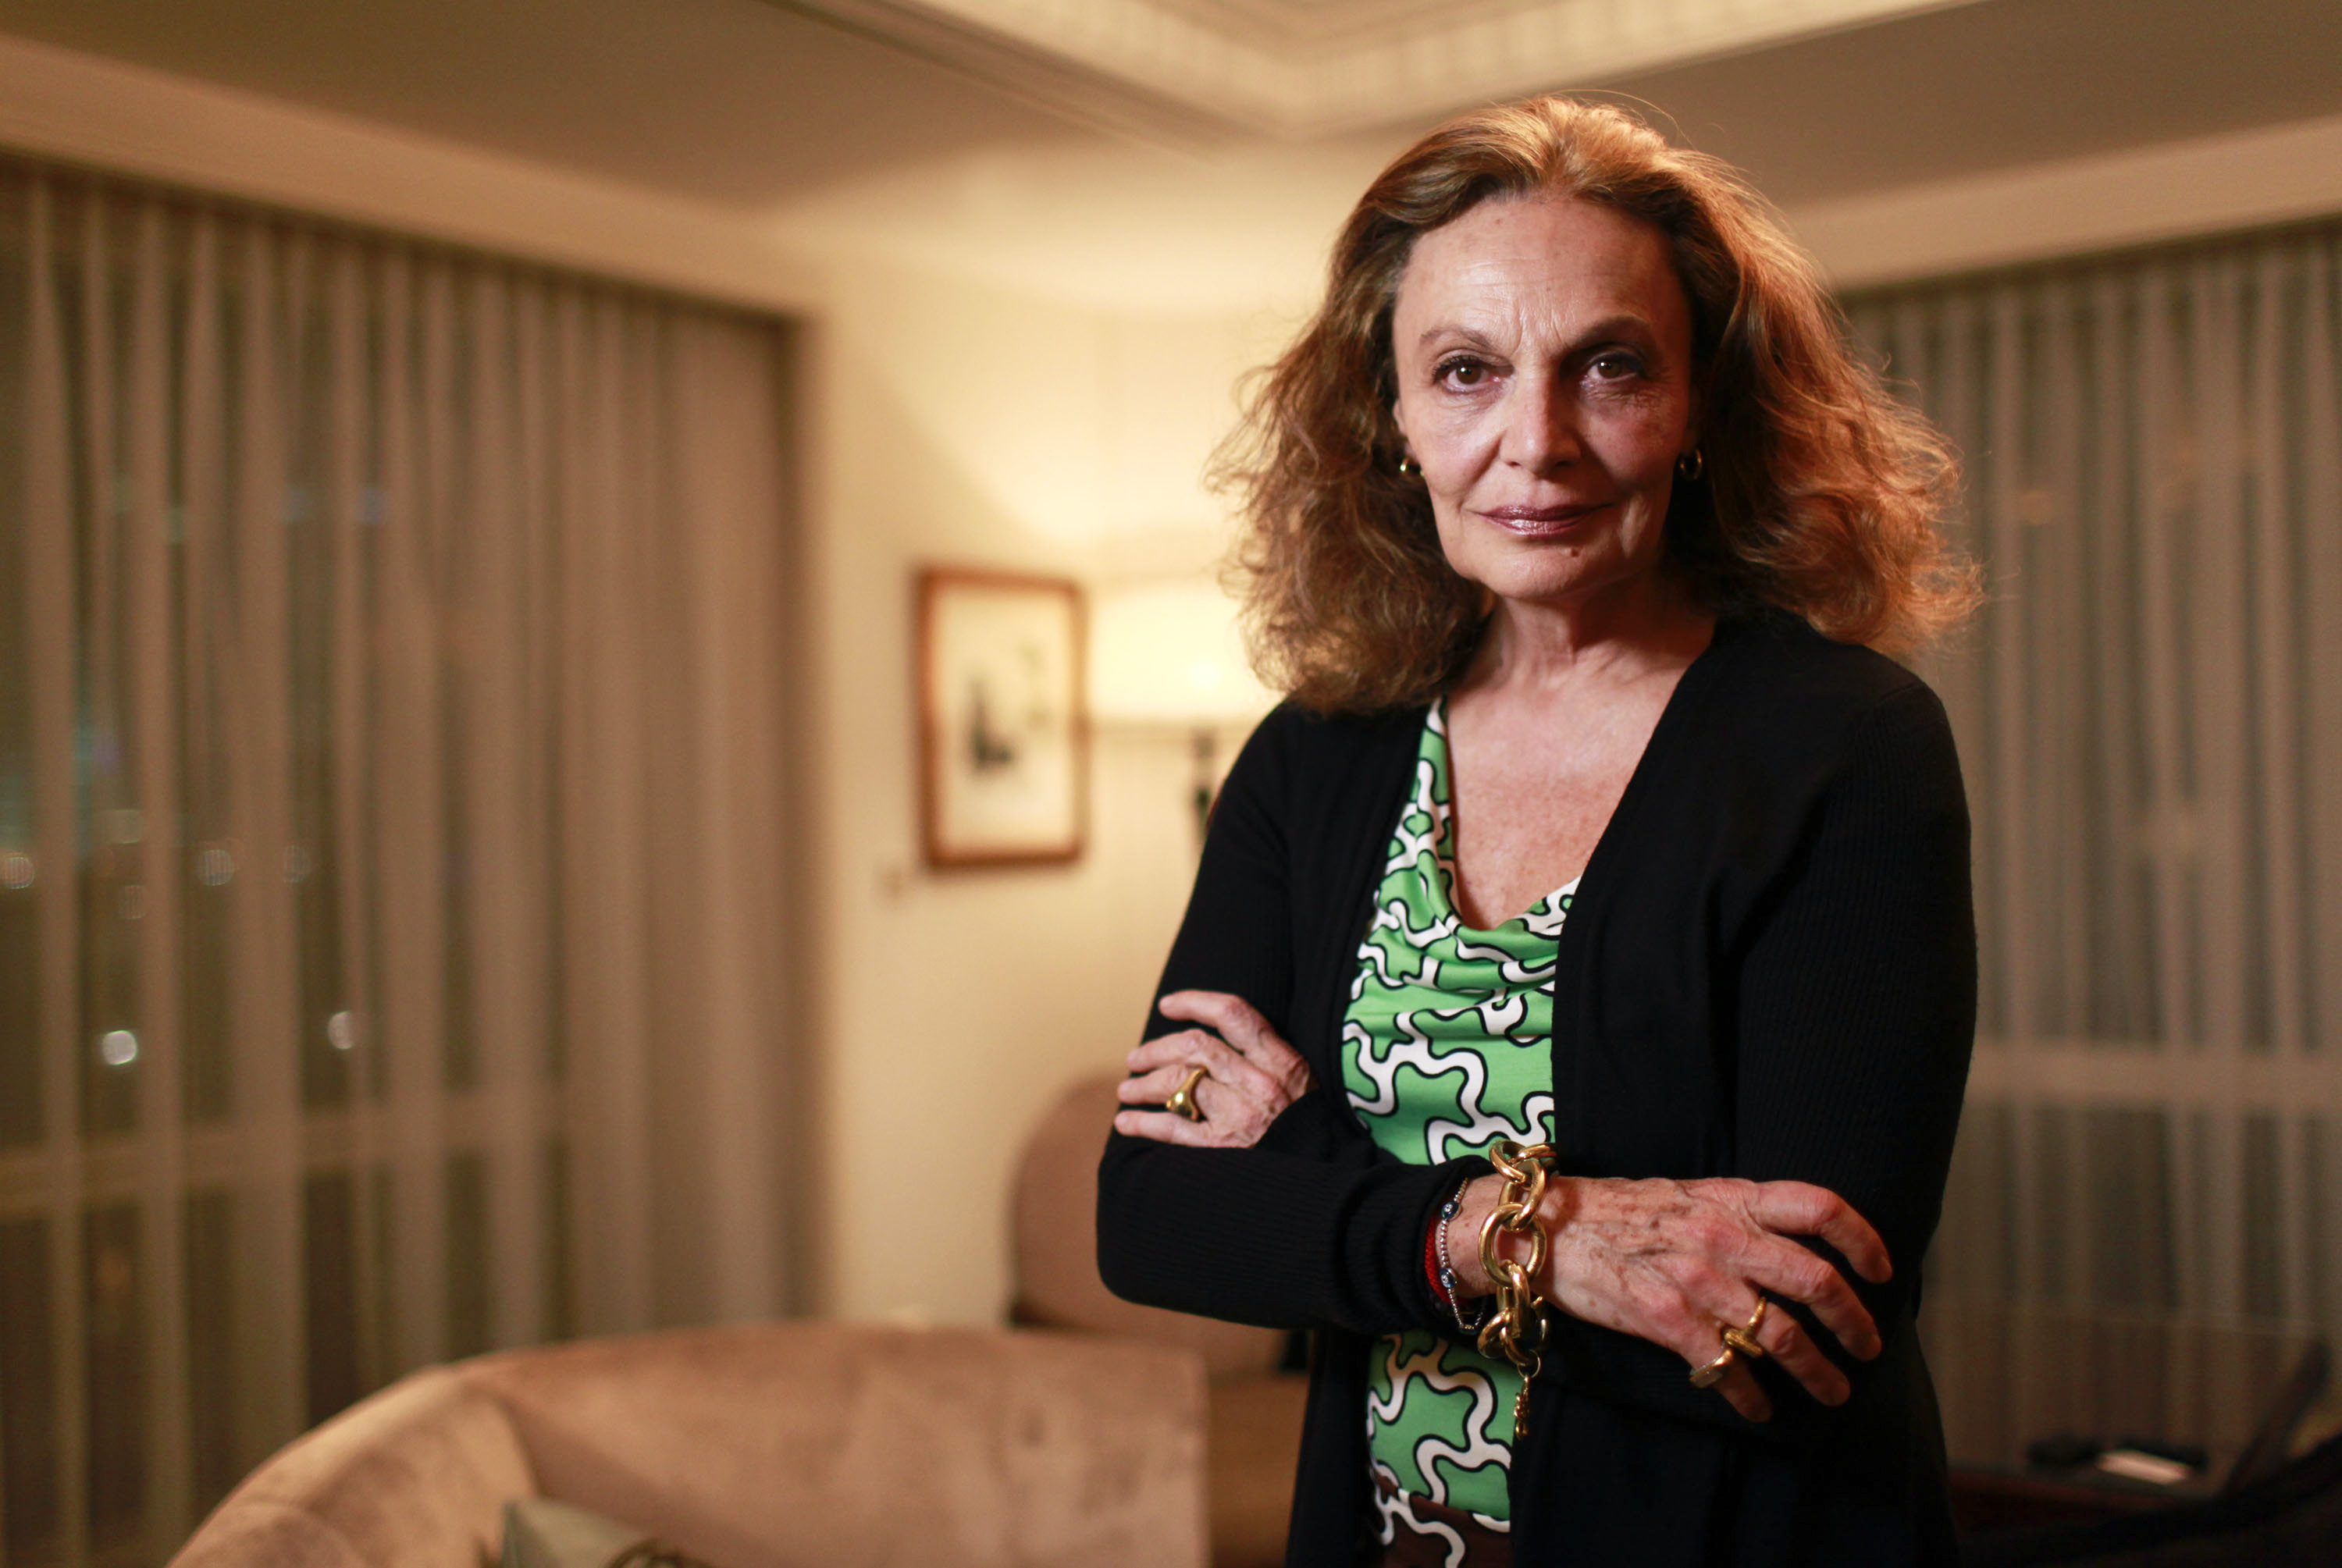 Designer Diane von Furstenberg poses for a photograph in Shanghai, China, on Monday, March 28, 2011. Von Furstenberg, who made marketing her clothes in China a New Year resolution, plans to sell products online as part her efforts to win more customers in the world's second-biggest economy. Photographer: Qilai Shen/Bloomberg *** Local Caption *** Diane von Furstenberg   ORG XMIT: 111120470